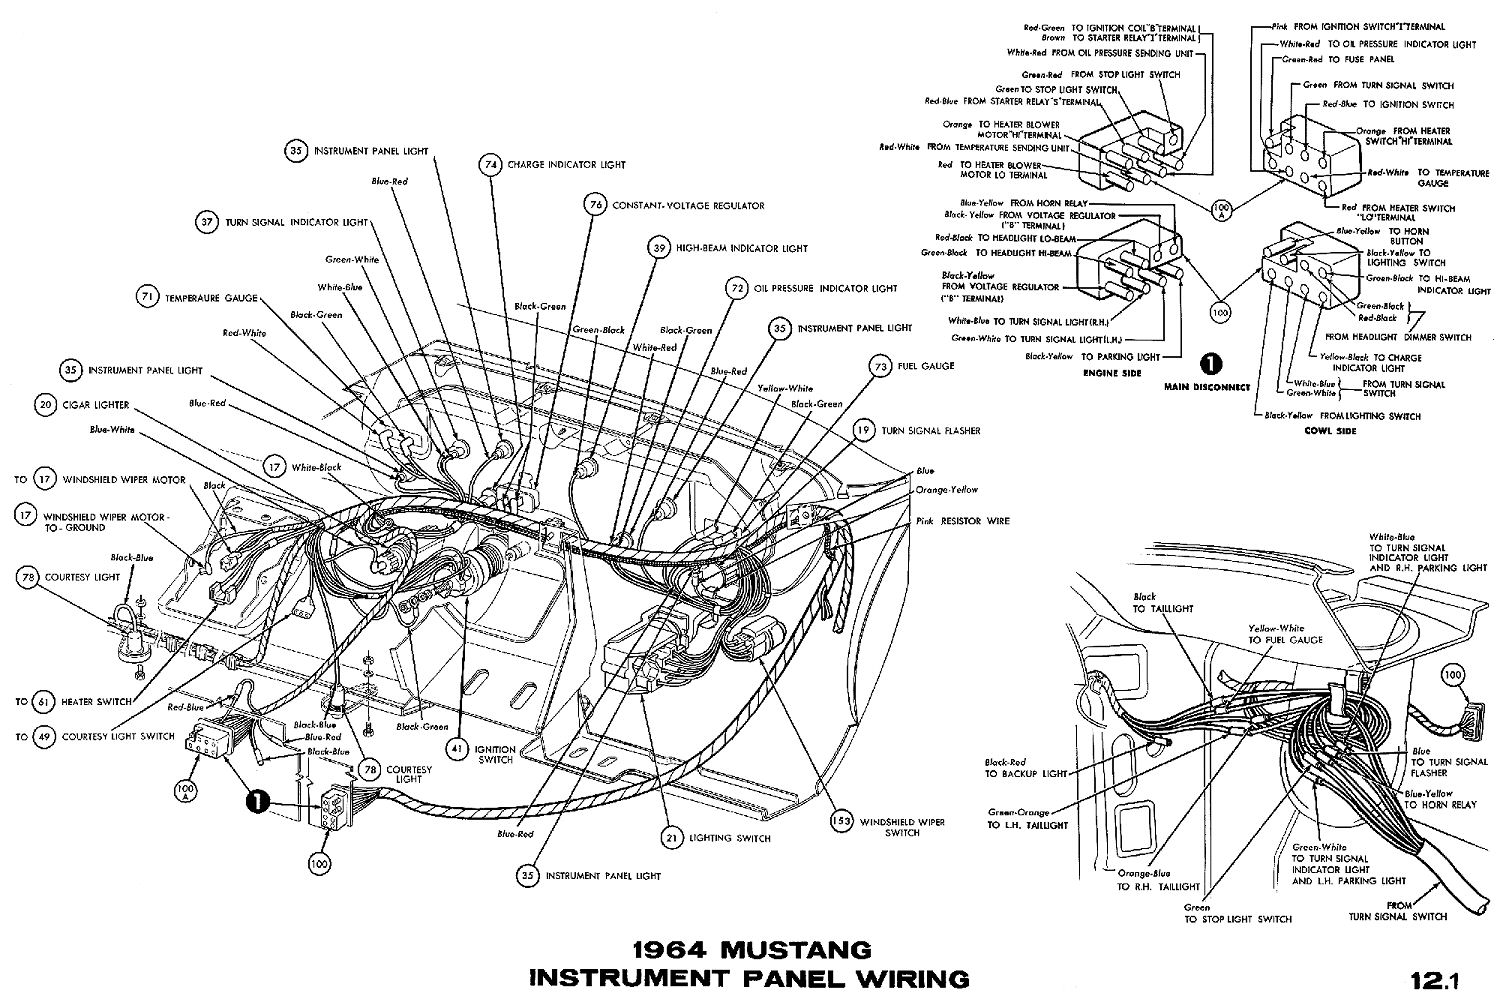 1964 mustang wiring diagrams average joe restoration sm1964b 1964 mustang instrument panel pictorial